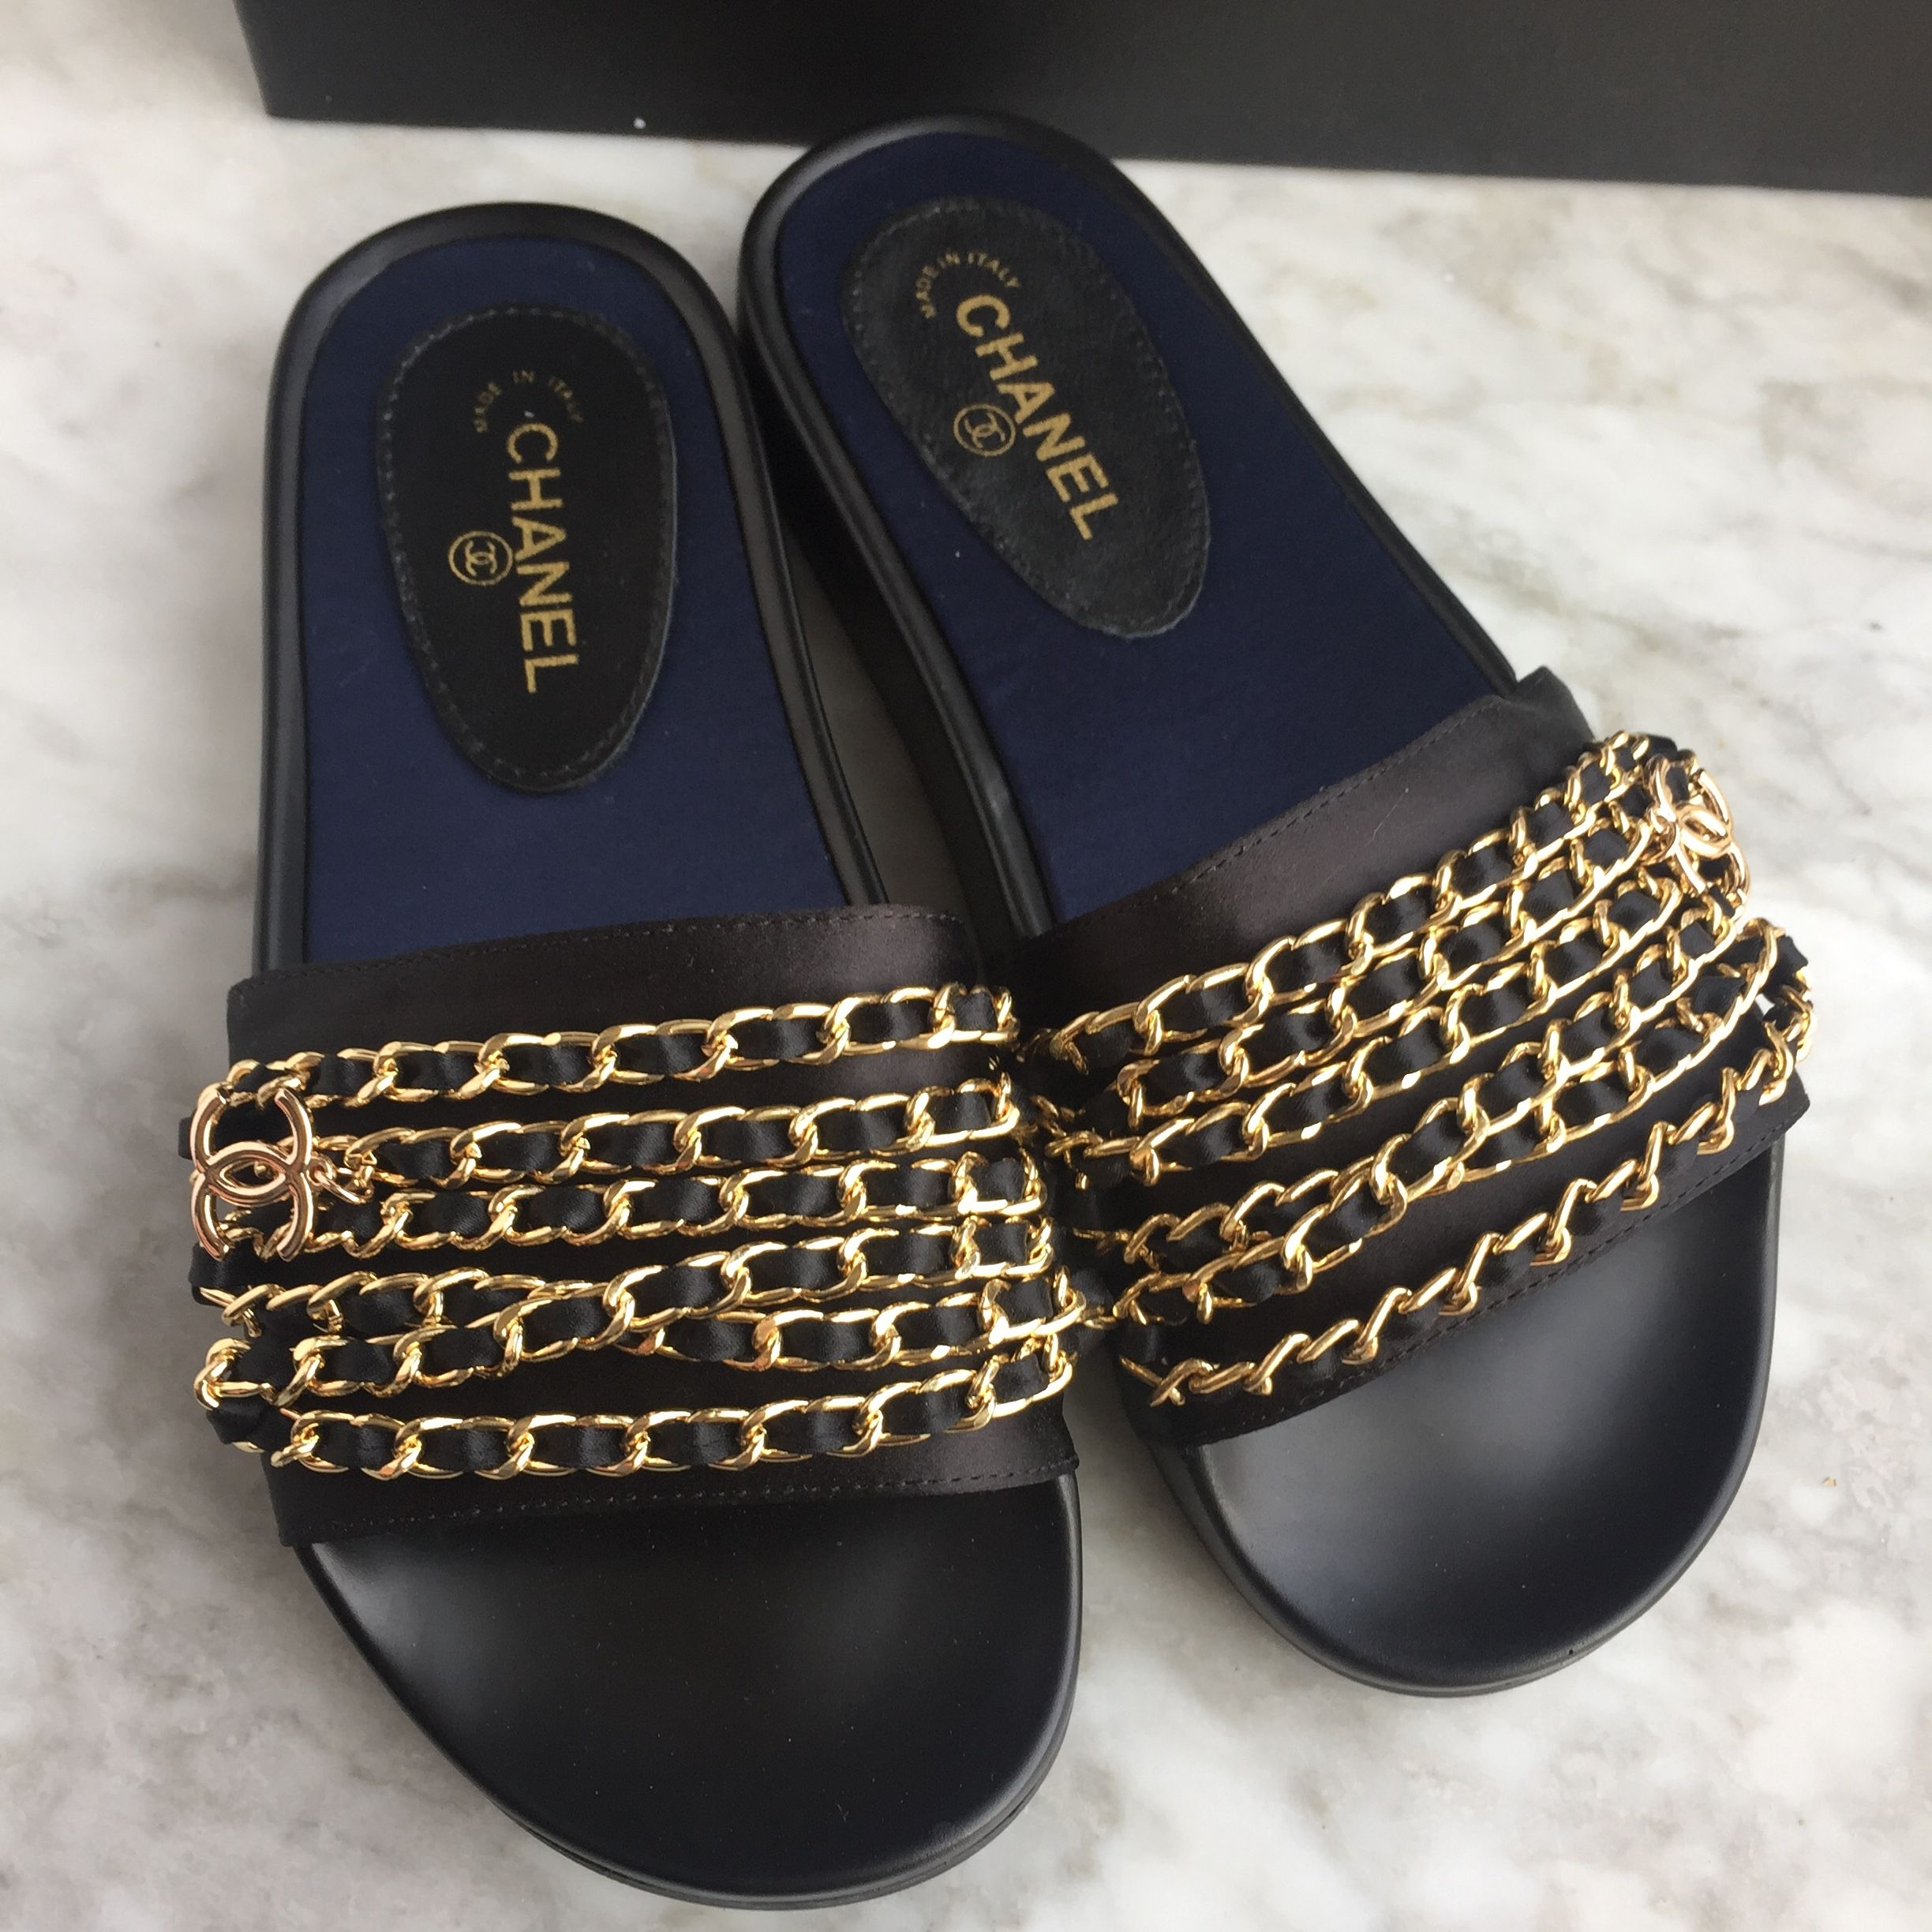 92f40b72761 Chanel woman slippers chain flats | On my feet in 2019 | Chanel ...